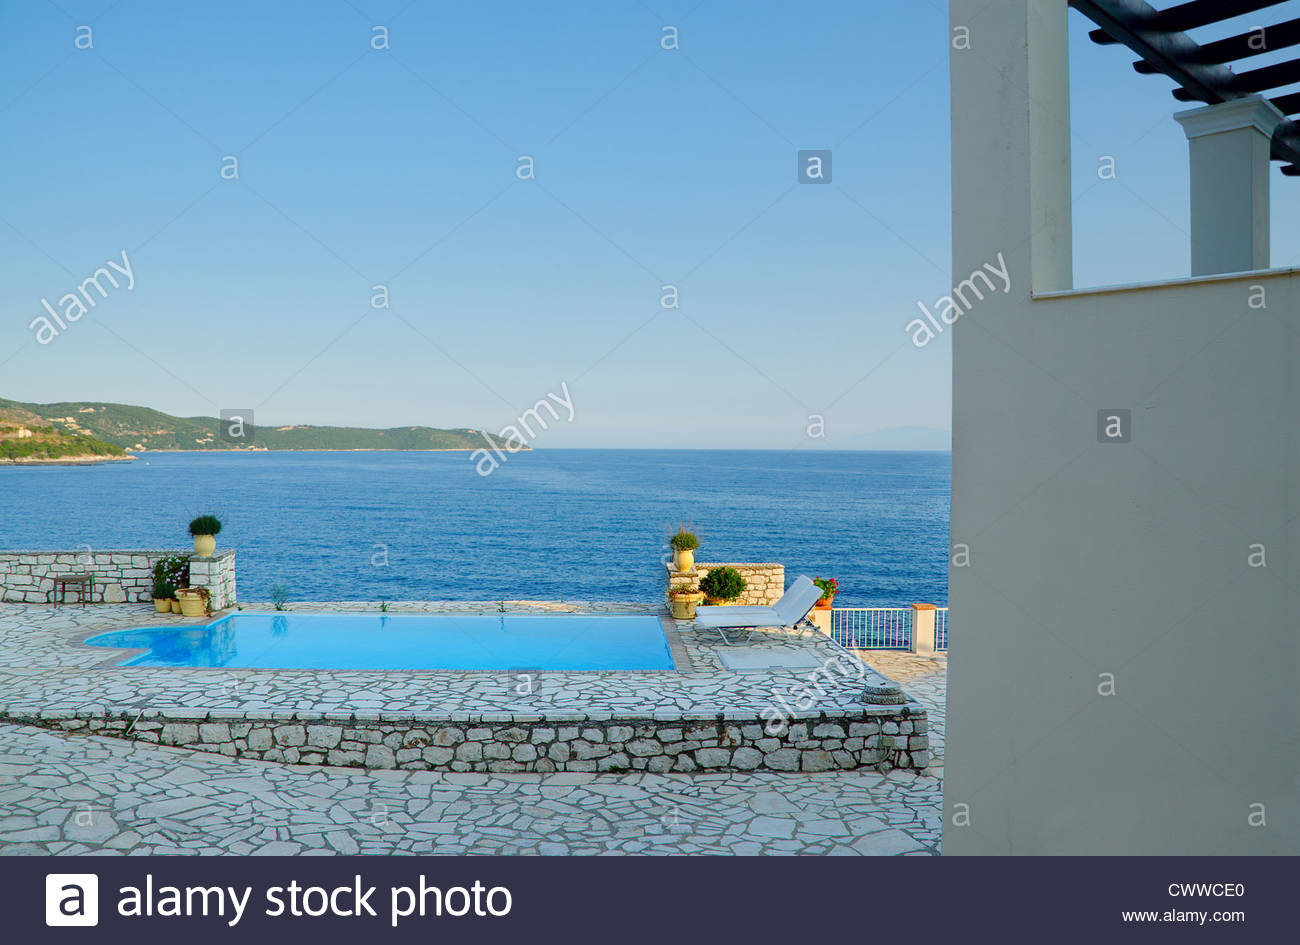 Pool by the sea - Stock Image